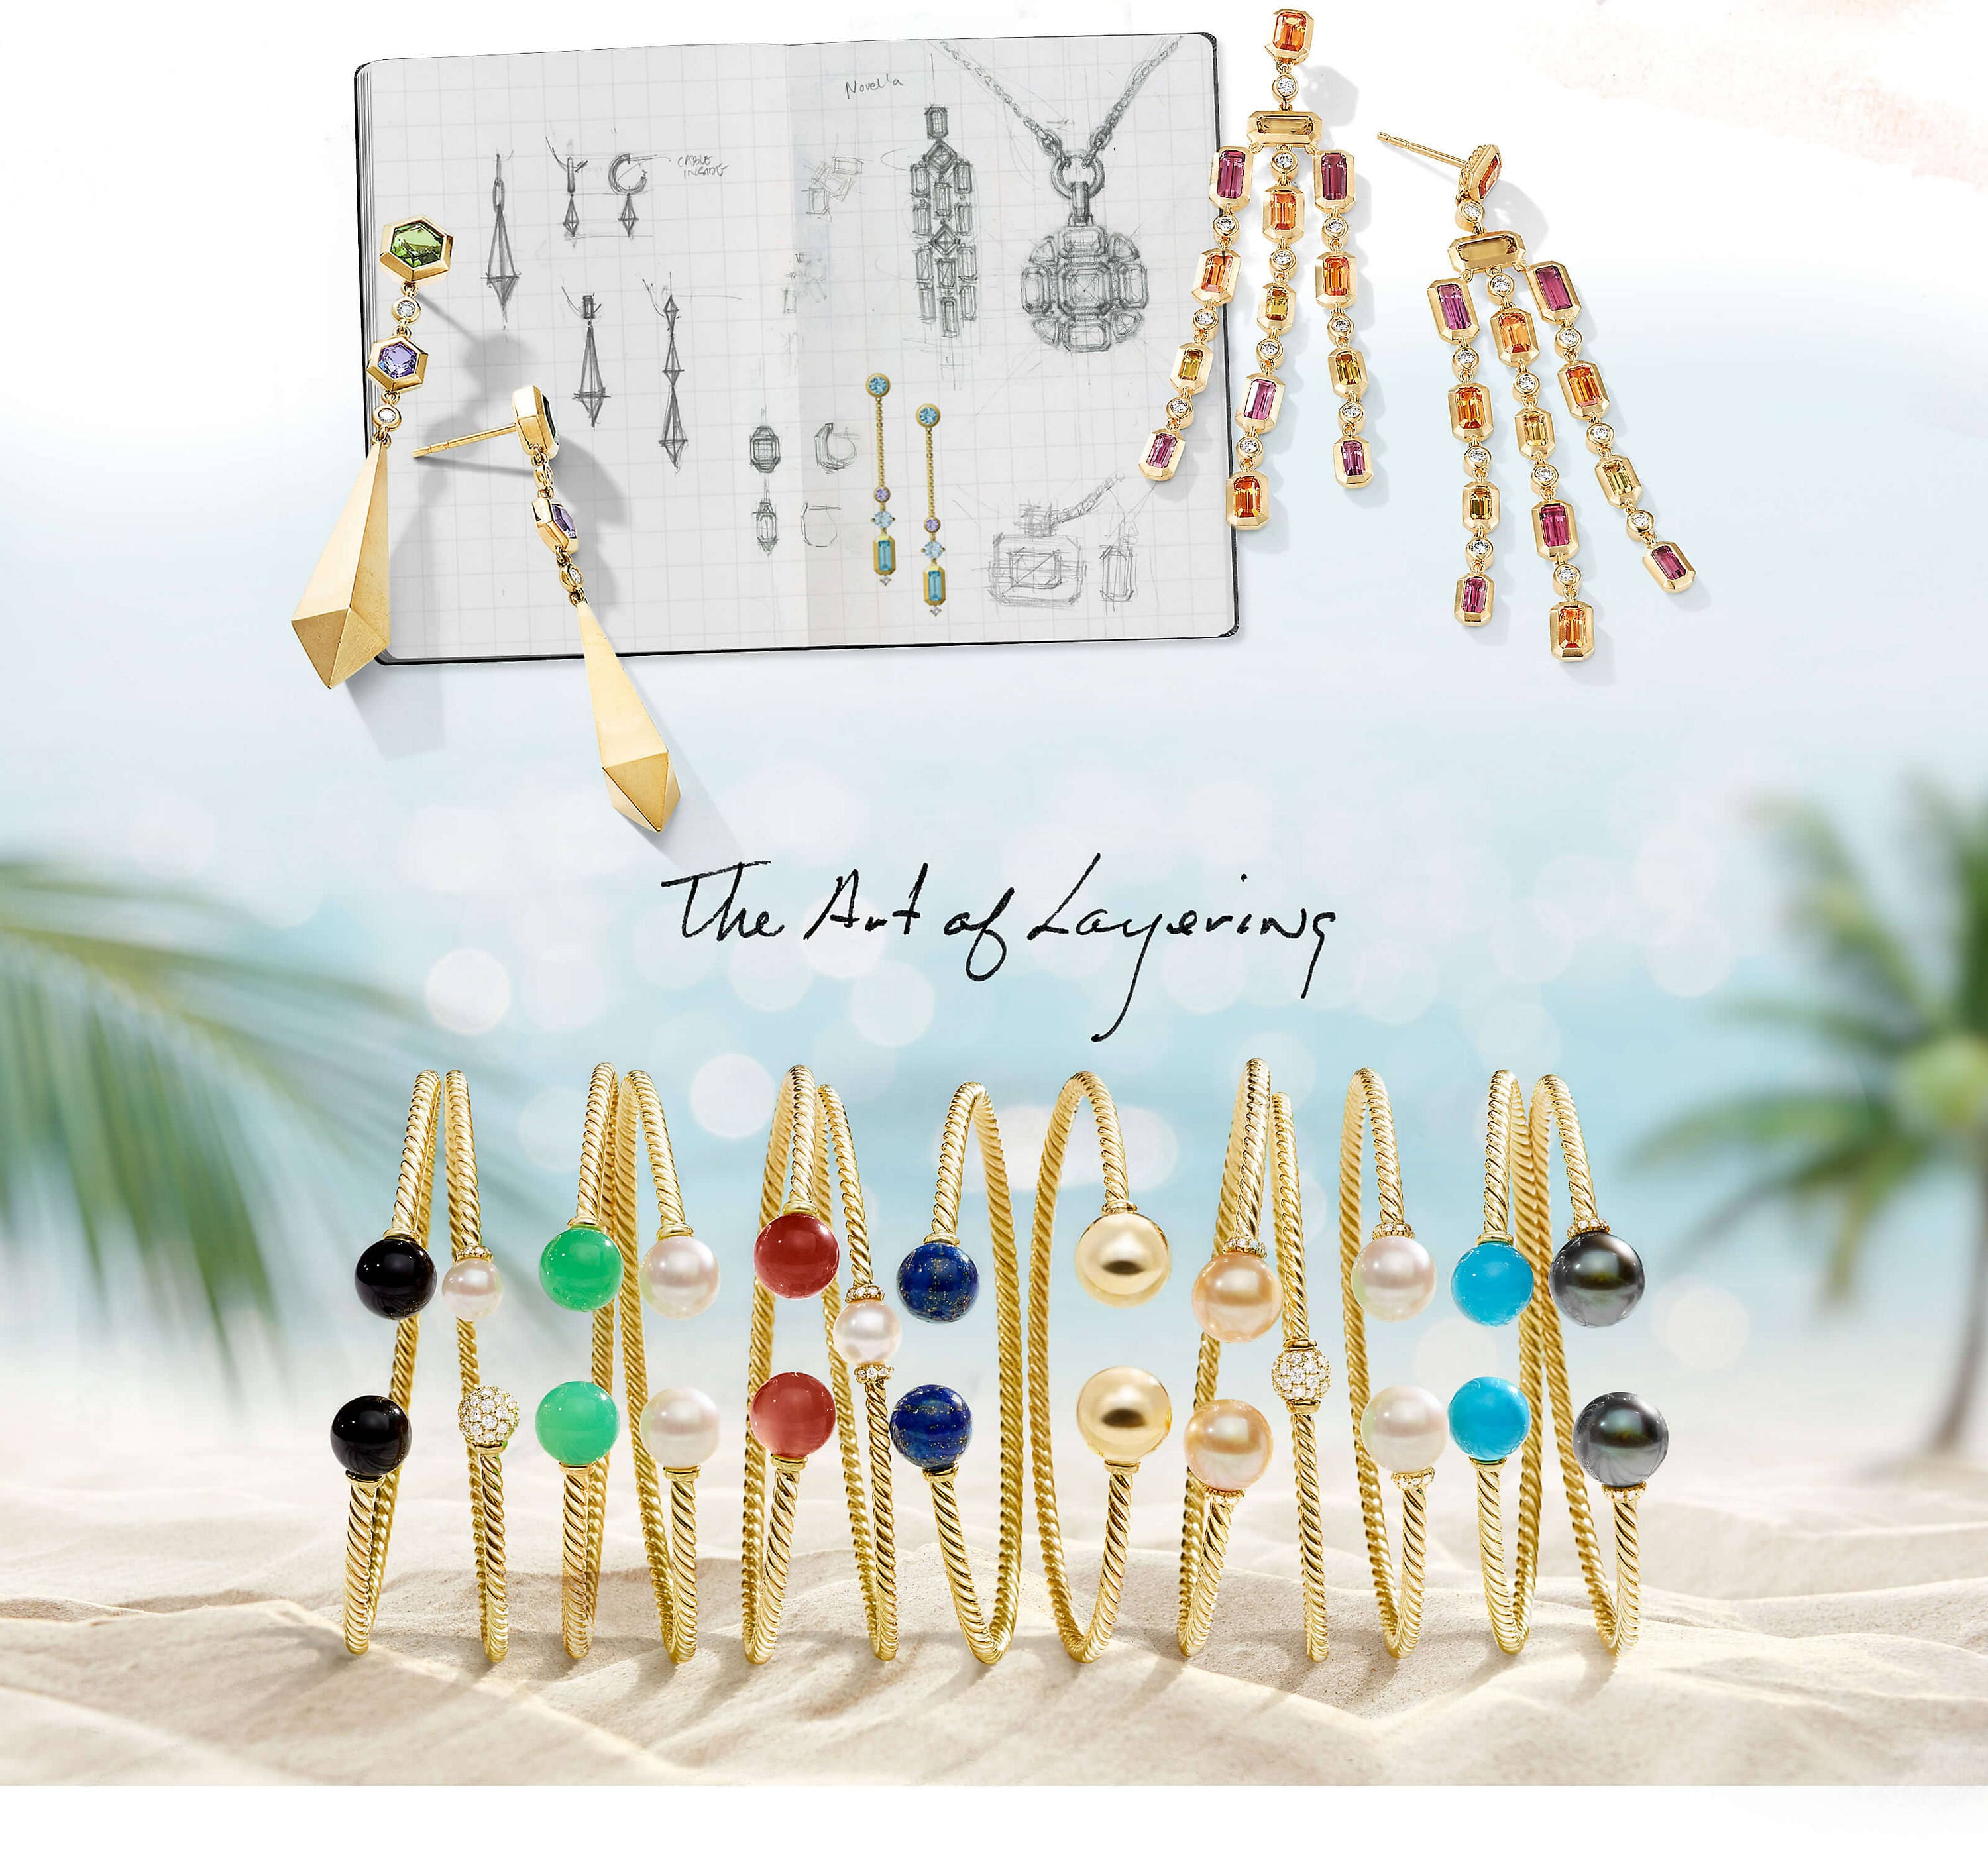 "A color photo shows a collage of pictures and jewelry. At the top is a colorful photo of a sketchbook open to display two pages with black-and-white and color sketches of David Yurman women's Novella and Bold Renaissance designs. Arranged on top of and casting long shadows over the lower-left corner of the book is a pair of Bold Renaissance drop earrings in 18K yellow gold with green tourmaline, tanzanite and white diamonds. To the right of the book and casting long shadows over the right side of the right page and the gradient white-and-blue background of the image is a pair of David Yurman women's Novella chandelier earrings in 18K yellow gold with spessartite garnet, pink tourmaline and white diamonds. Below the book and the text on the page are the words ""The Art of Layering"" handwritten in black ink. Below these handwritten words is a color photo showing a horizontal row of David Yurman Solari bracelets standing upright and casting long shadows on a light sandy beach. In the out-of-focus background are palm trees flanking either side of a blue sea with sunlight glittering on its surface. The jewelry is crafted from 18K yellow gold with colored gemstone, cultured pearl or pavé white diamond orbs."